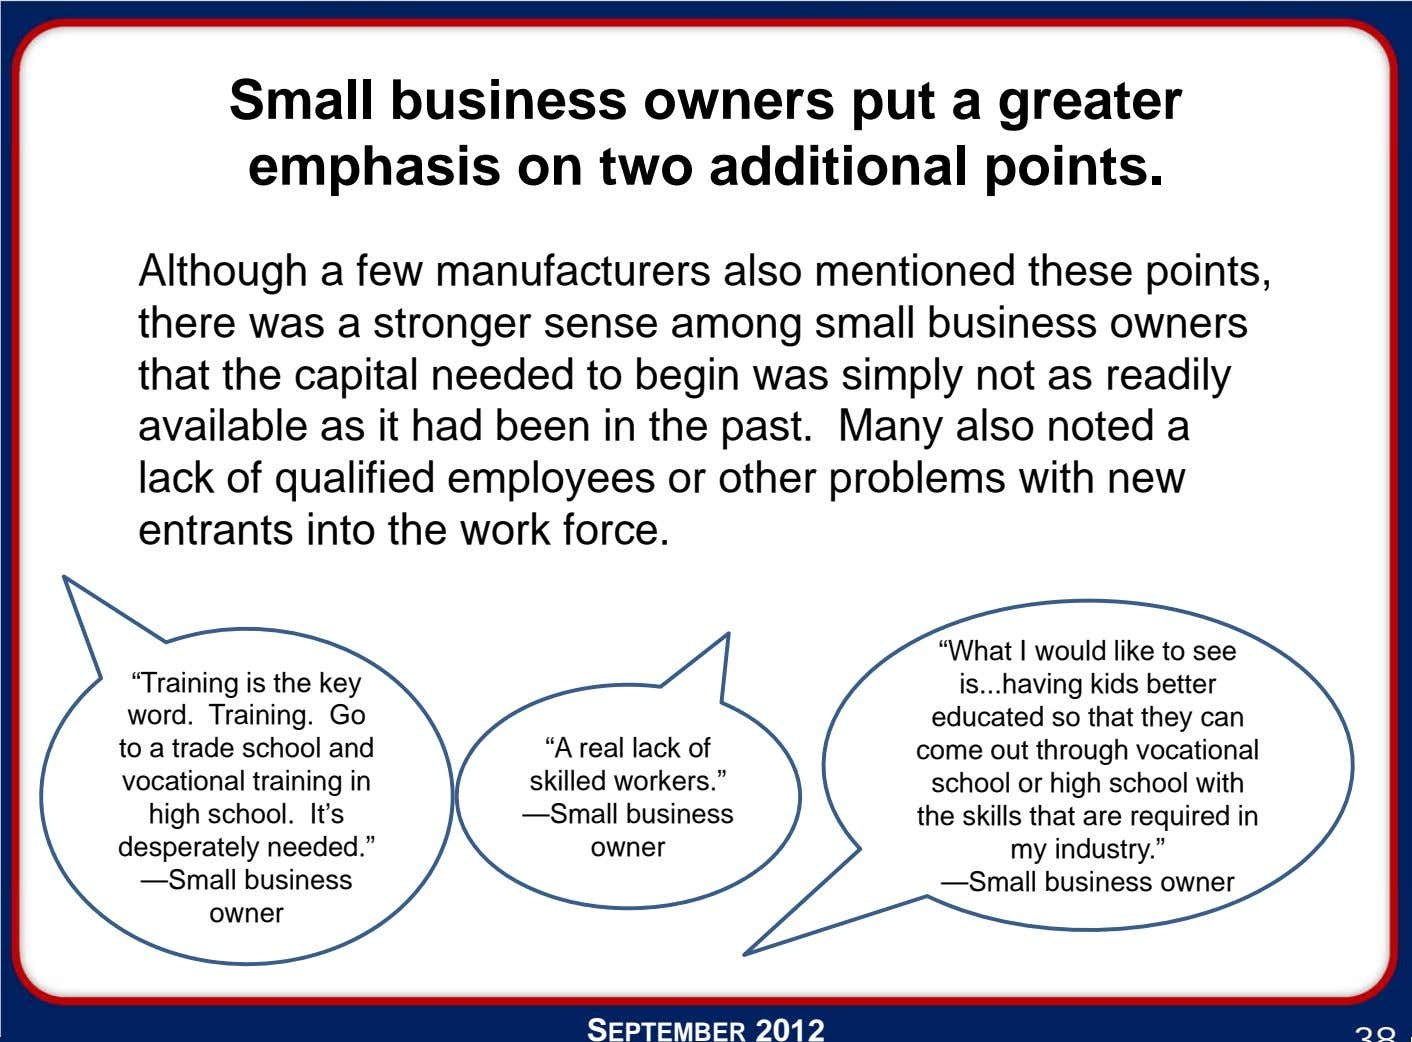 Small business owners put a greater emphasis on two additional points. Although a few manufacturers